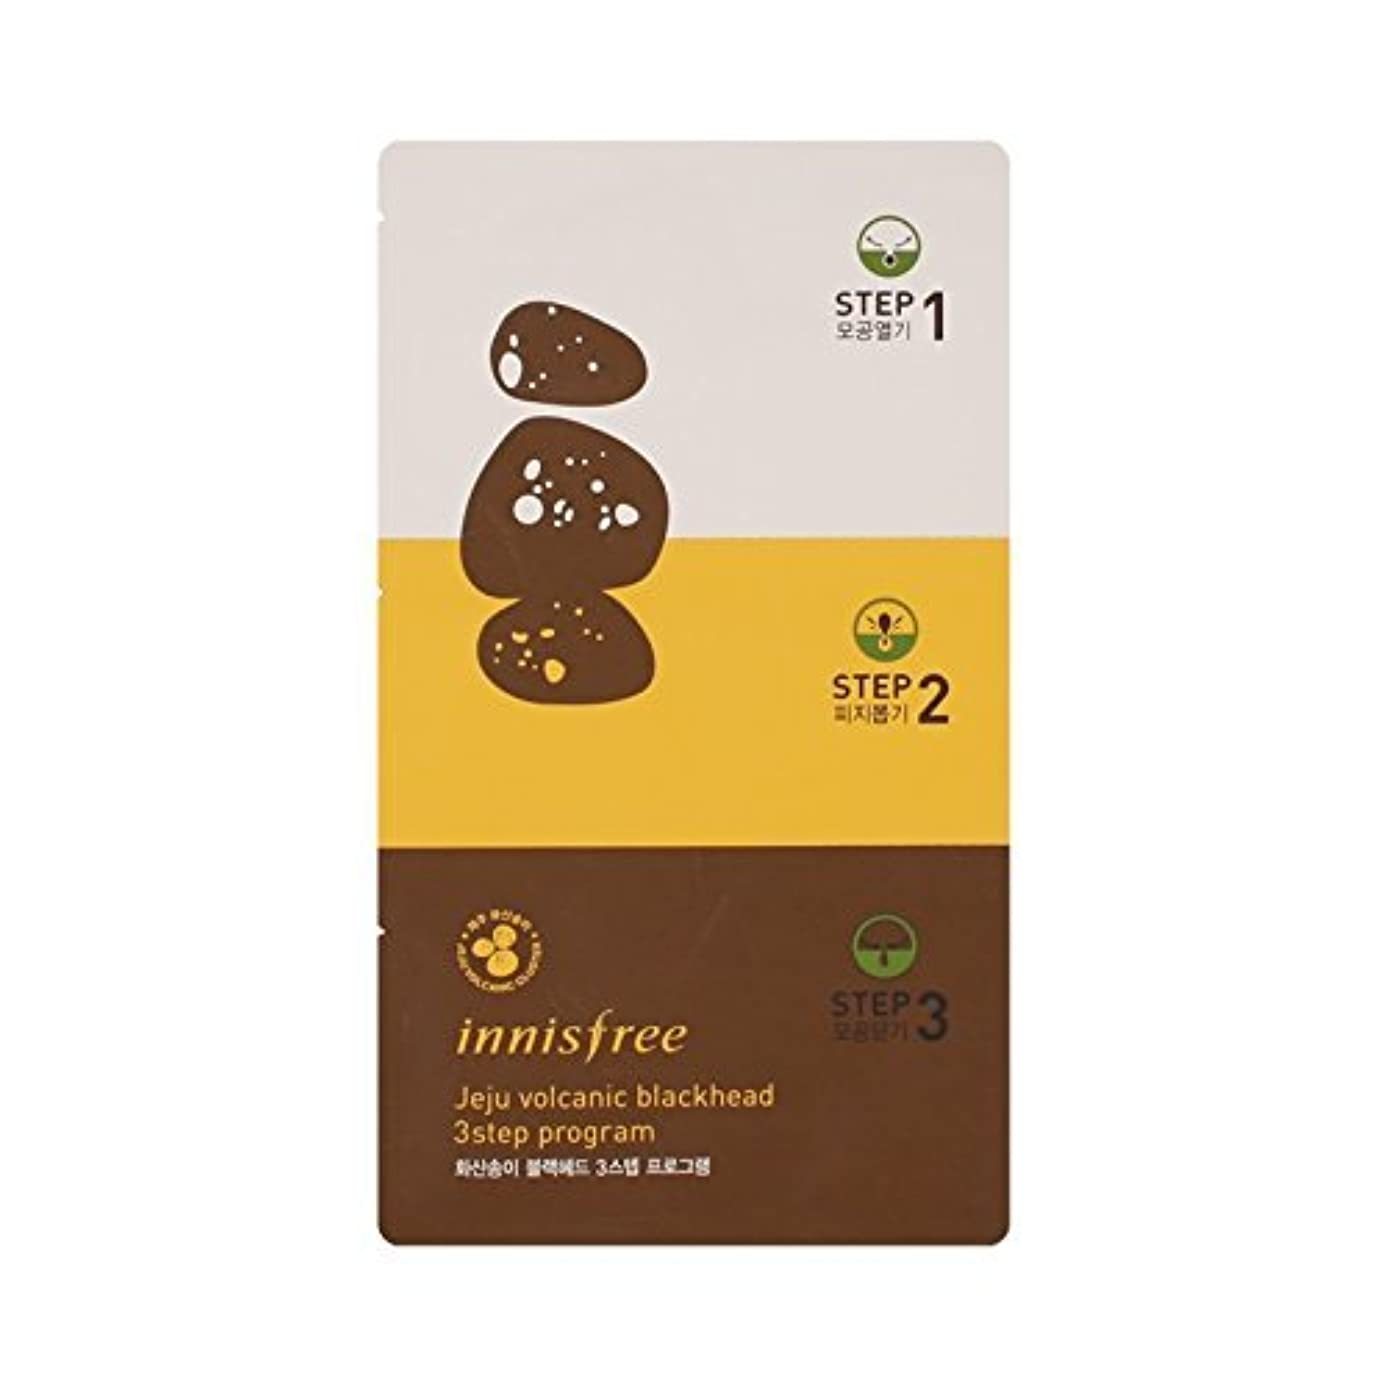 Buy 1 Get 1 Innisfree Jeju Volcanic Blackhead 3step Program, korean cosmetics